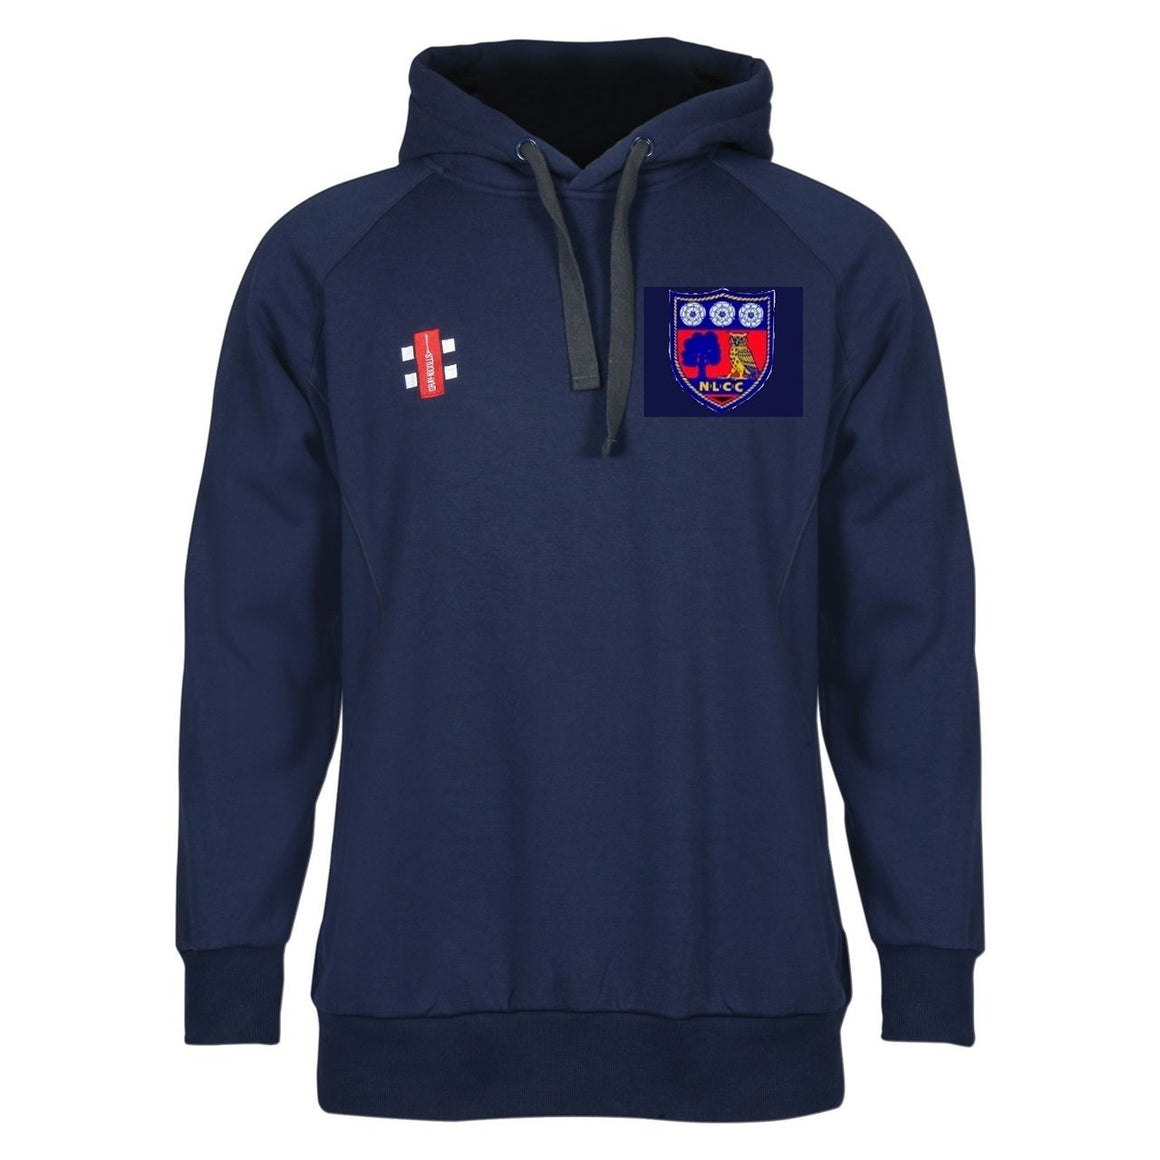 North Leeds Senior Hoody